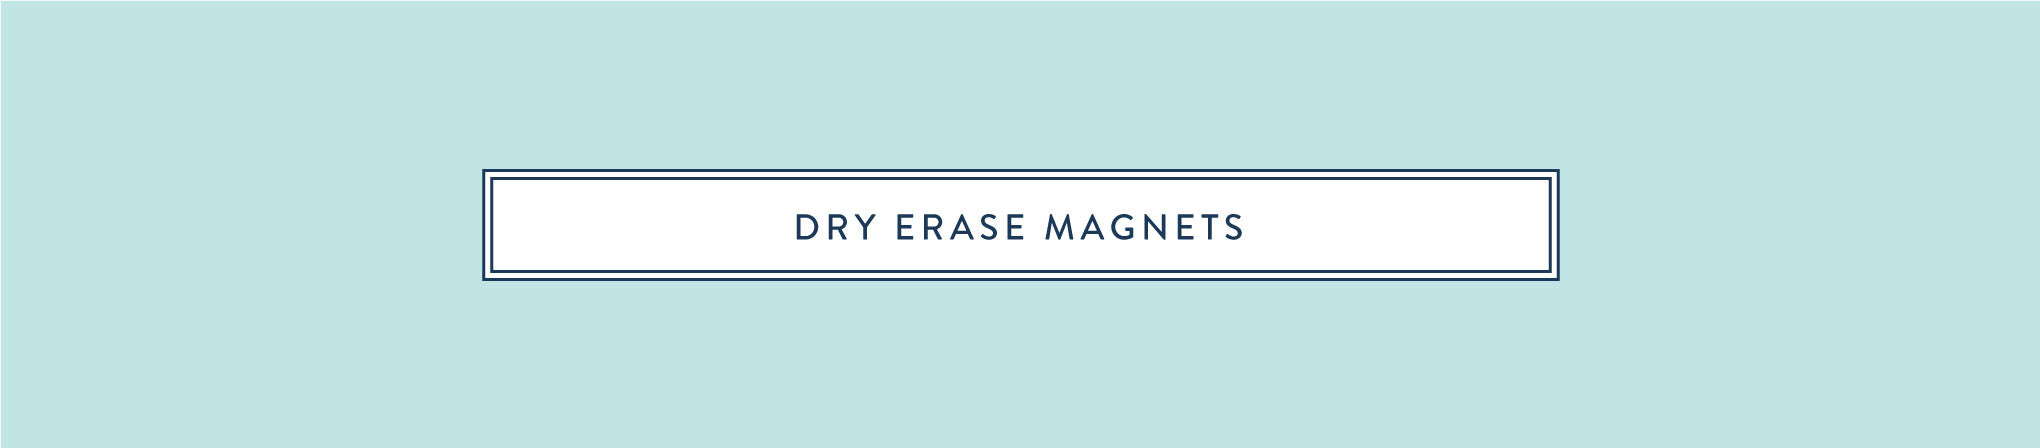 dry erase magnets simplified by emily ley